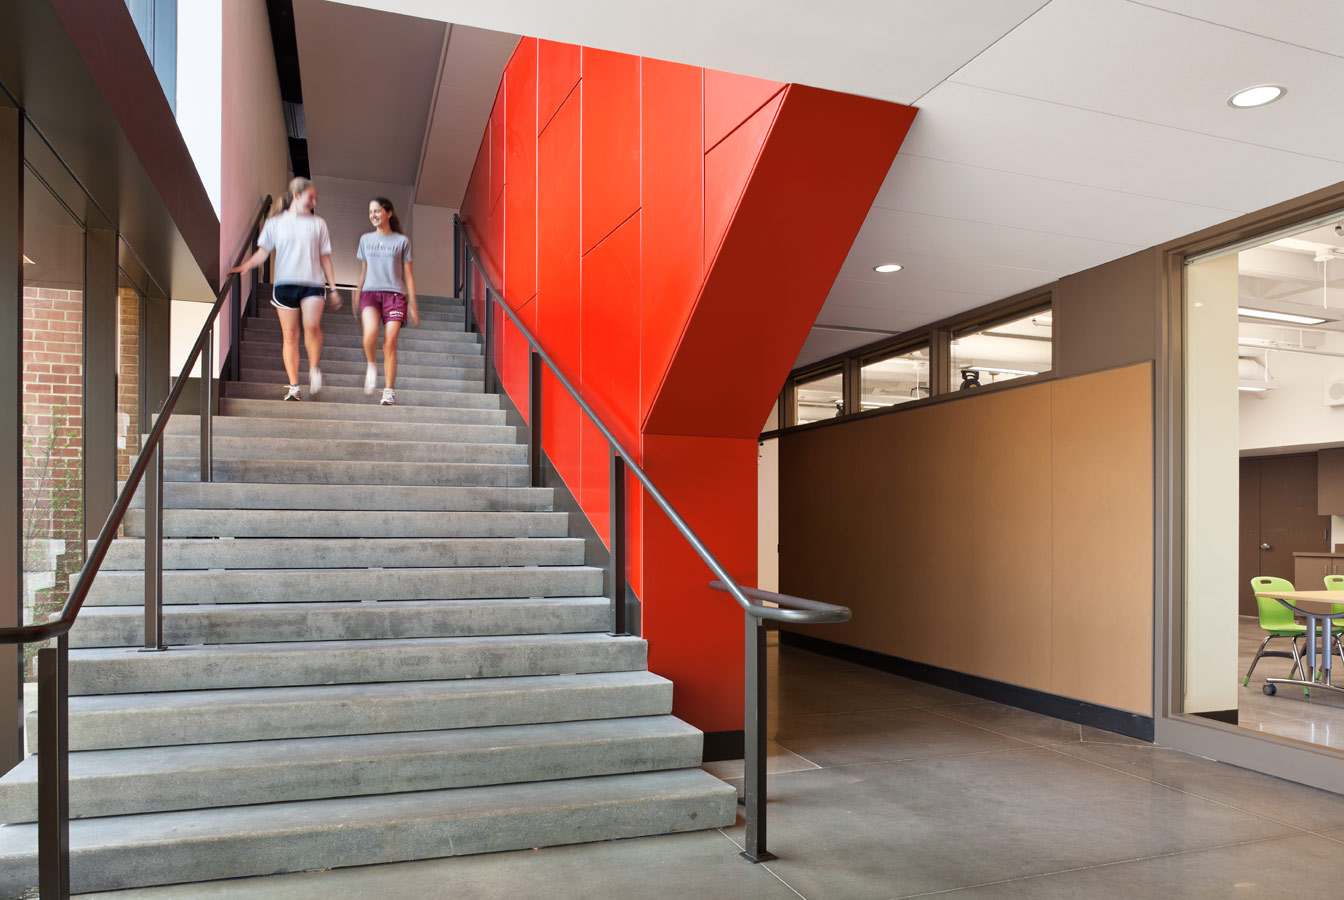 <p>A new stair descends from the gallery to the arts center, and to the lower campus. <br><small>&copy; Michael Moran/OTTO</small></p>